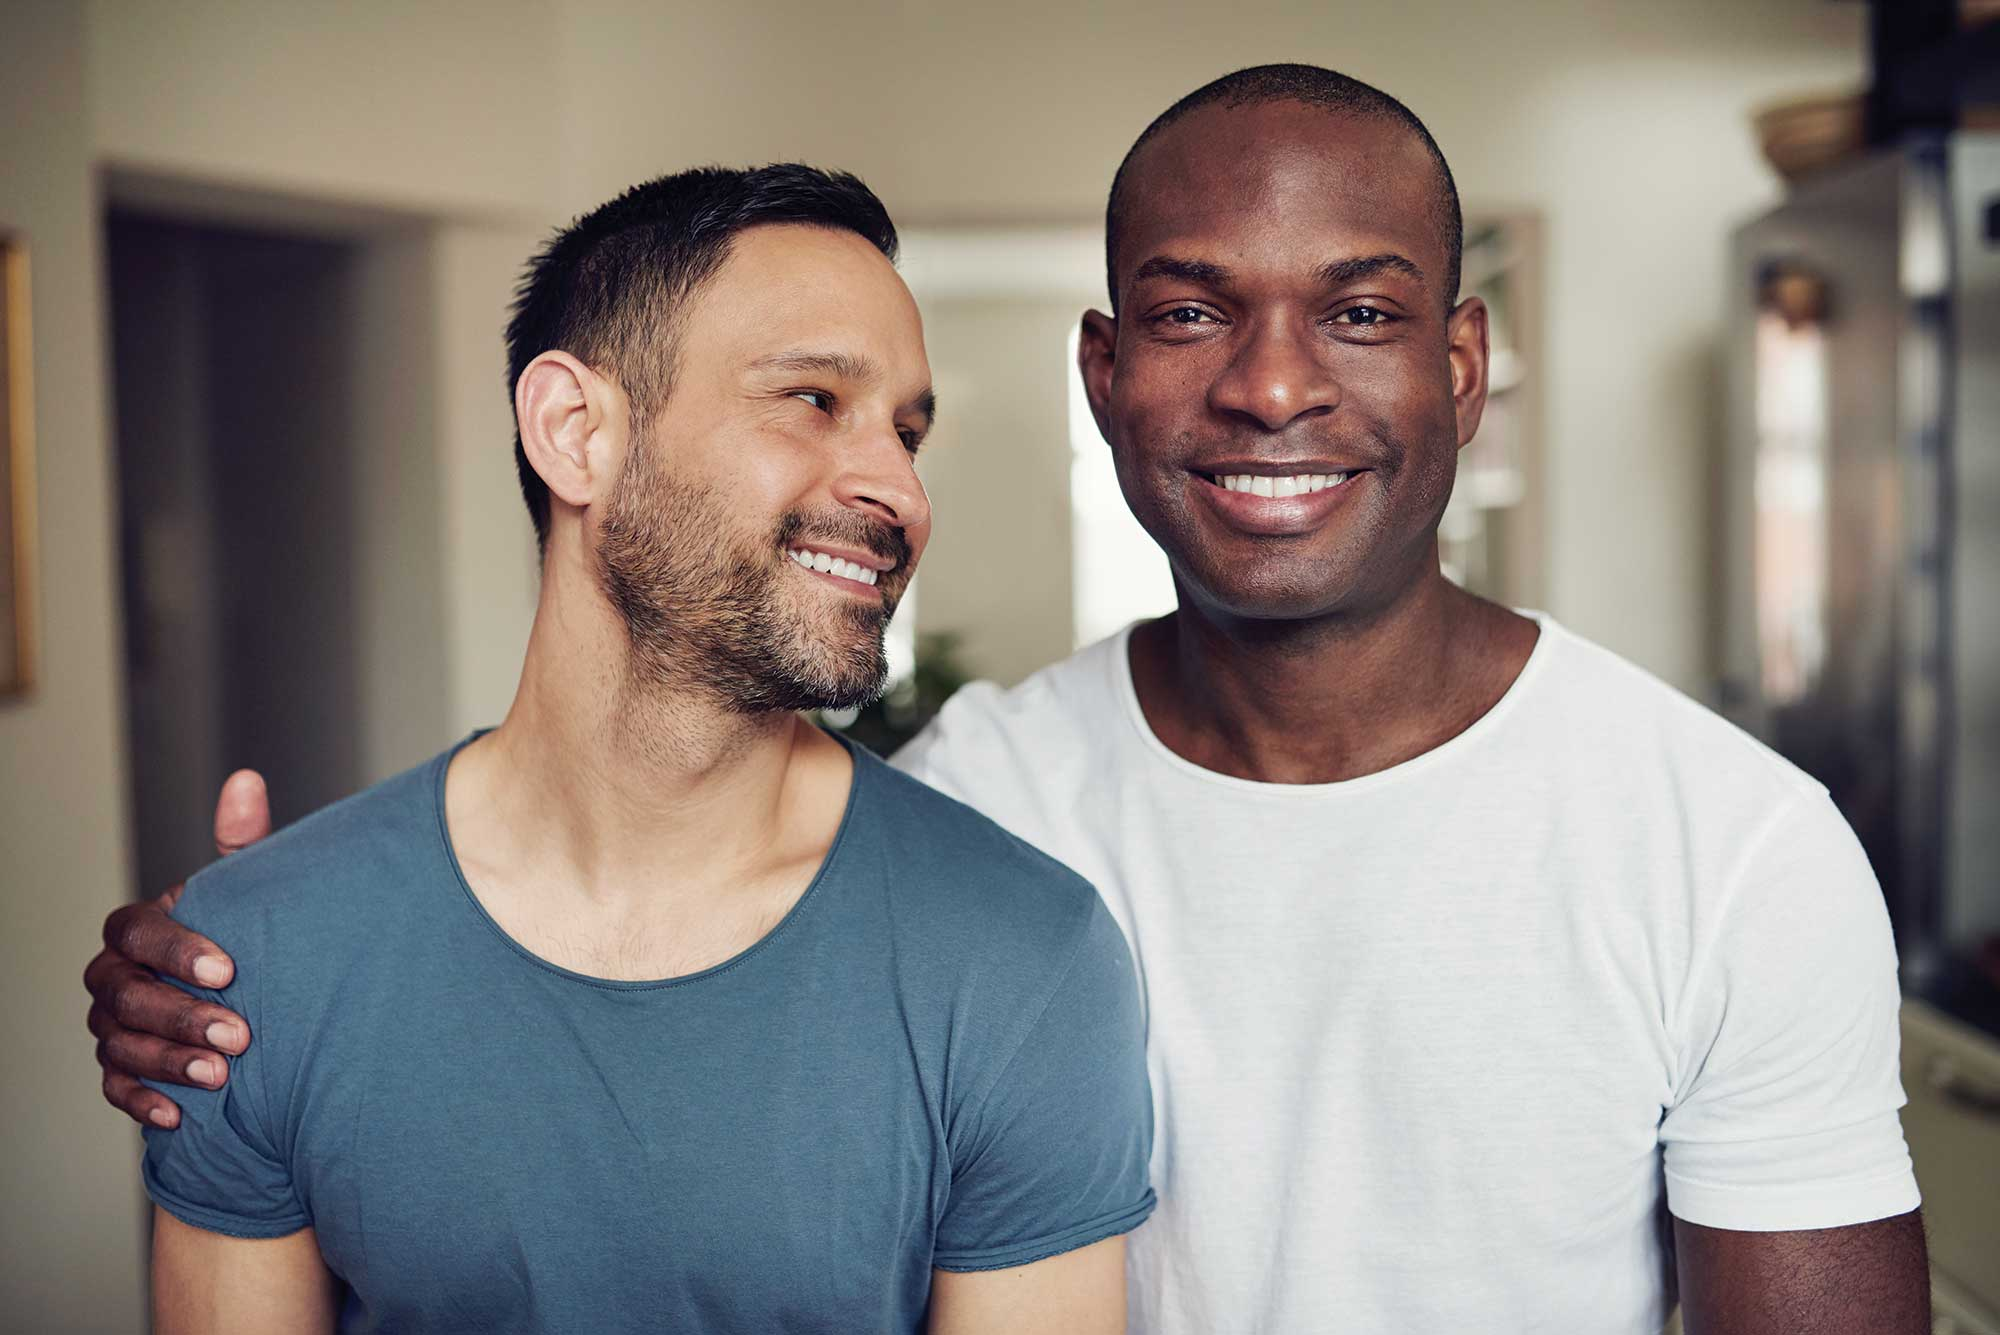 Gay Male couple looking at each other, looking at the camera